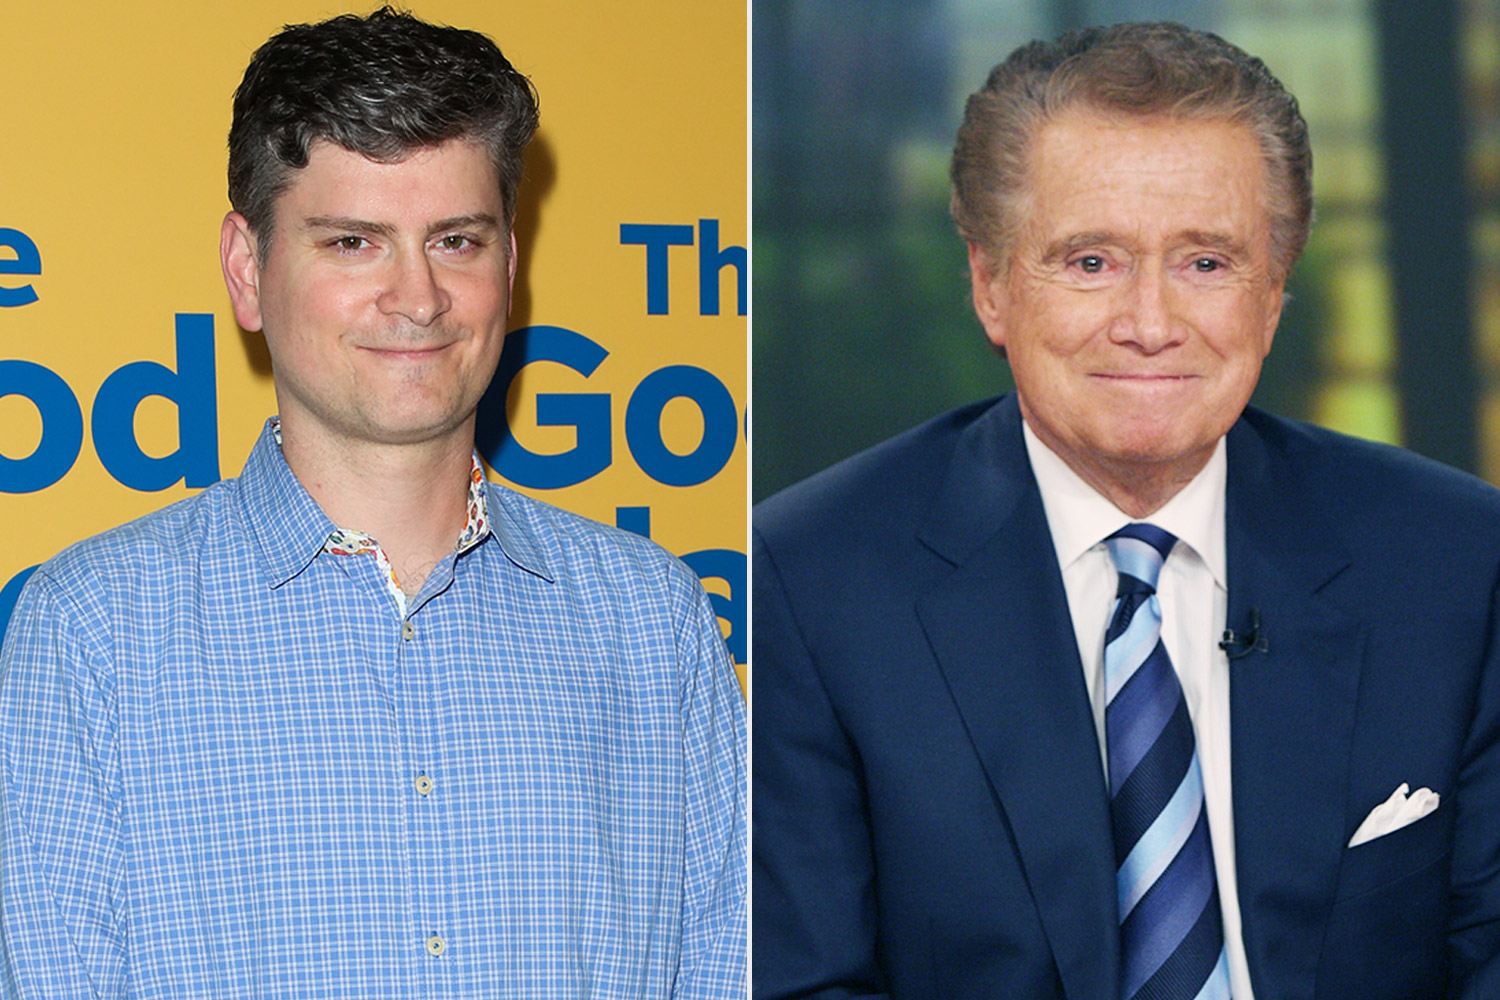 Michael Schur and Regis Philbin